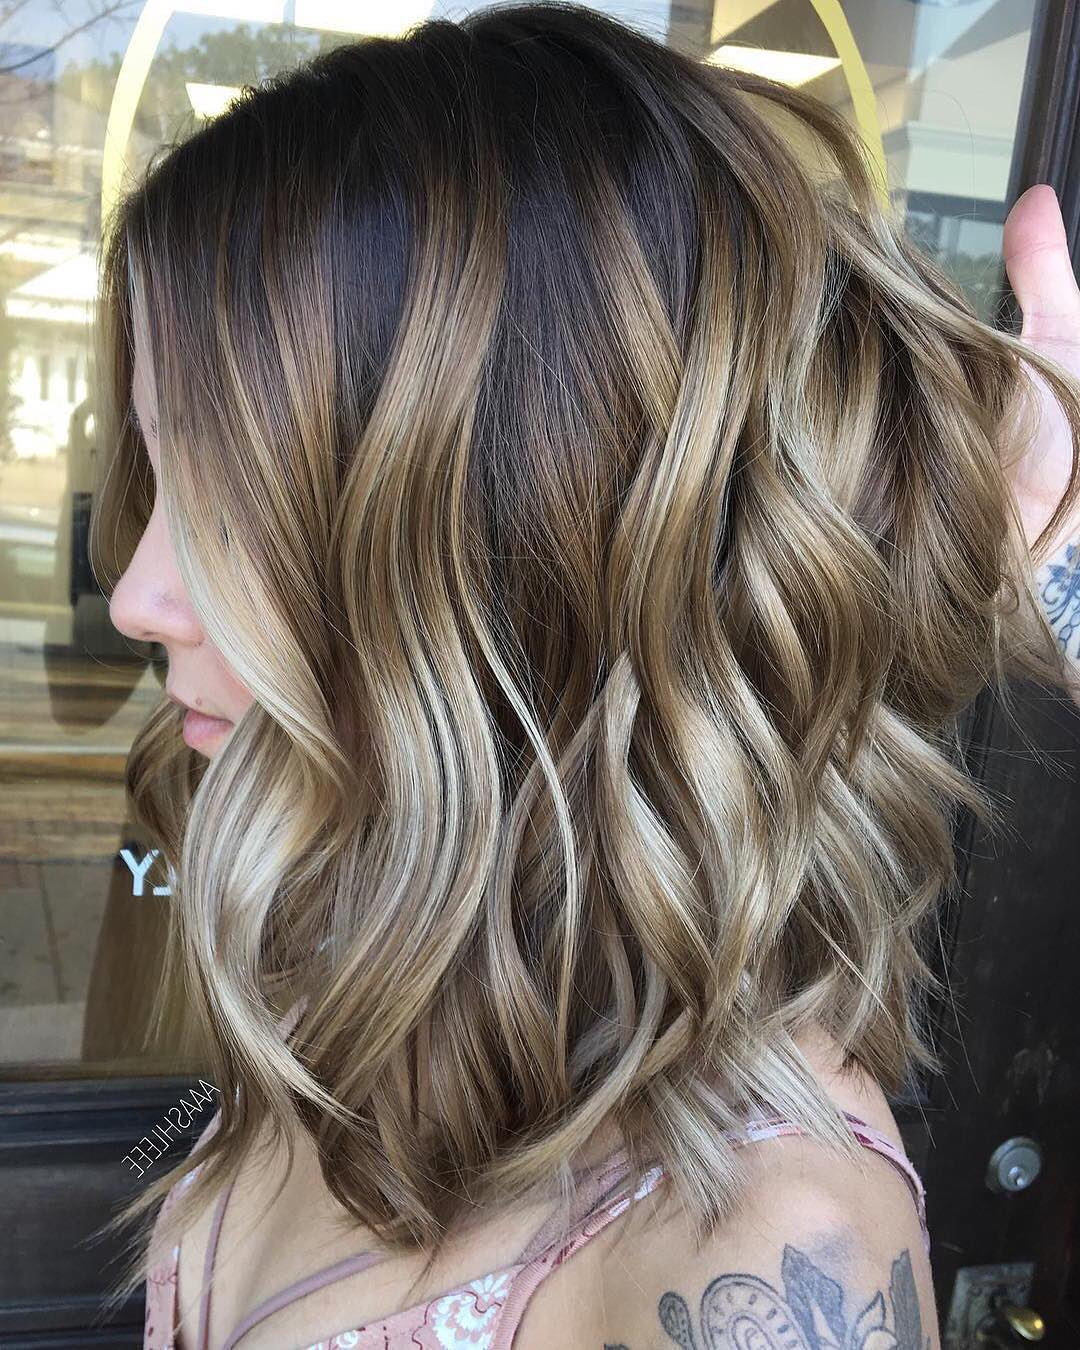 10 Ombre Balayage Hairstyles For Medium Length Hair Hair Color 2018